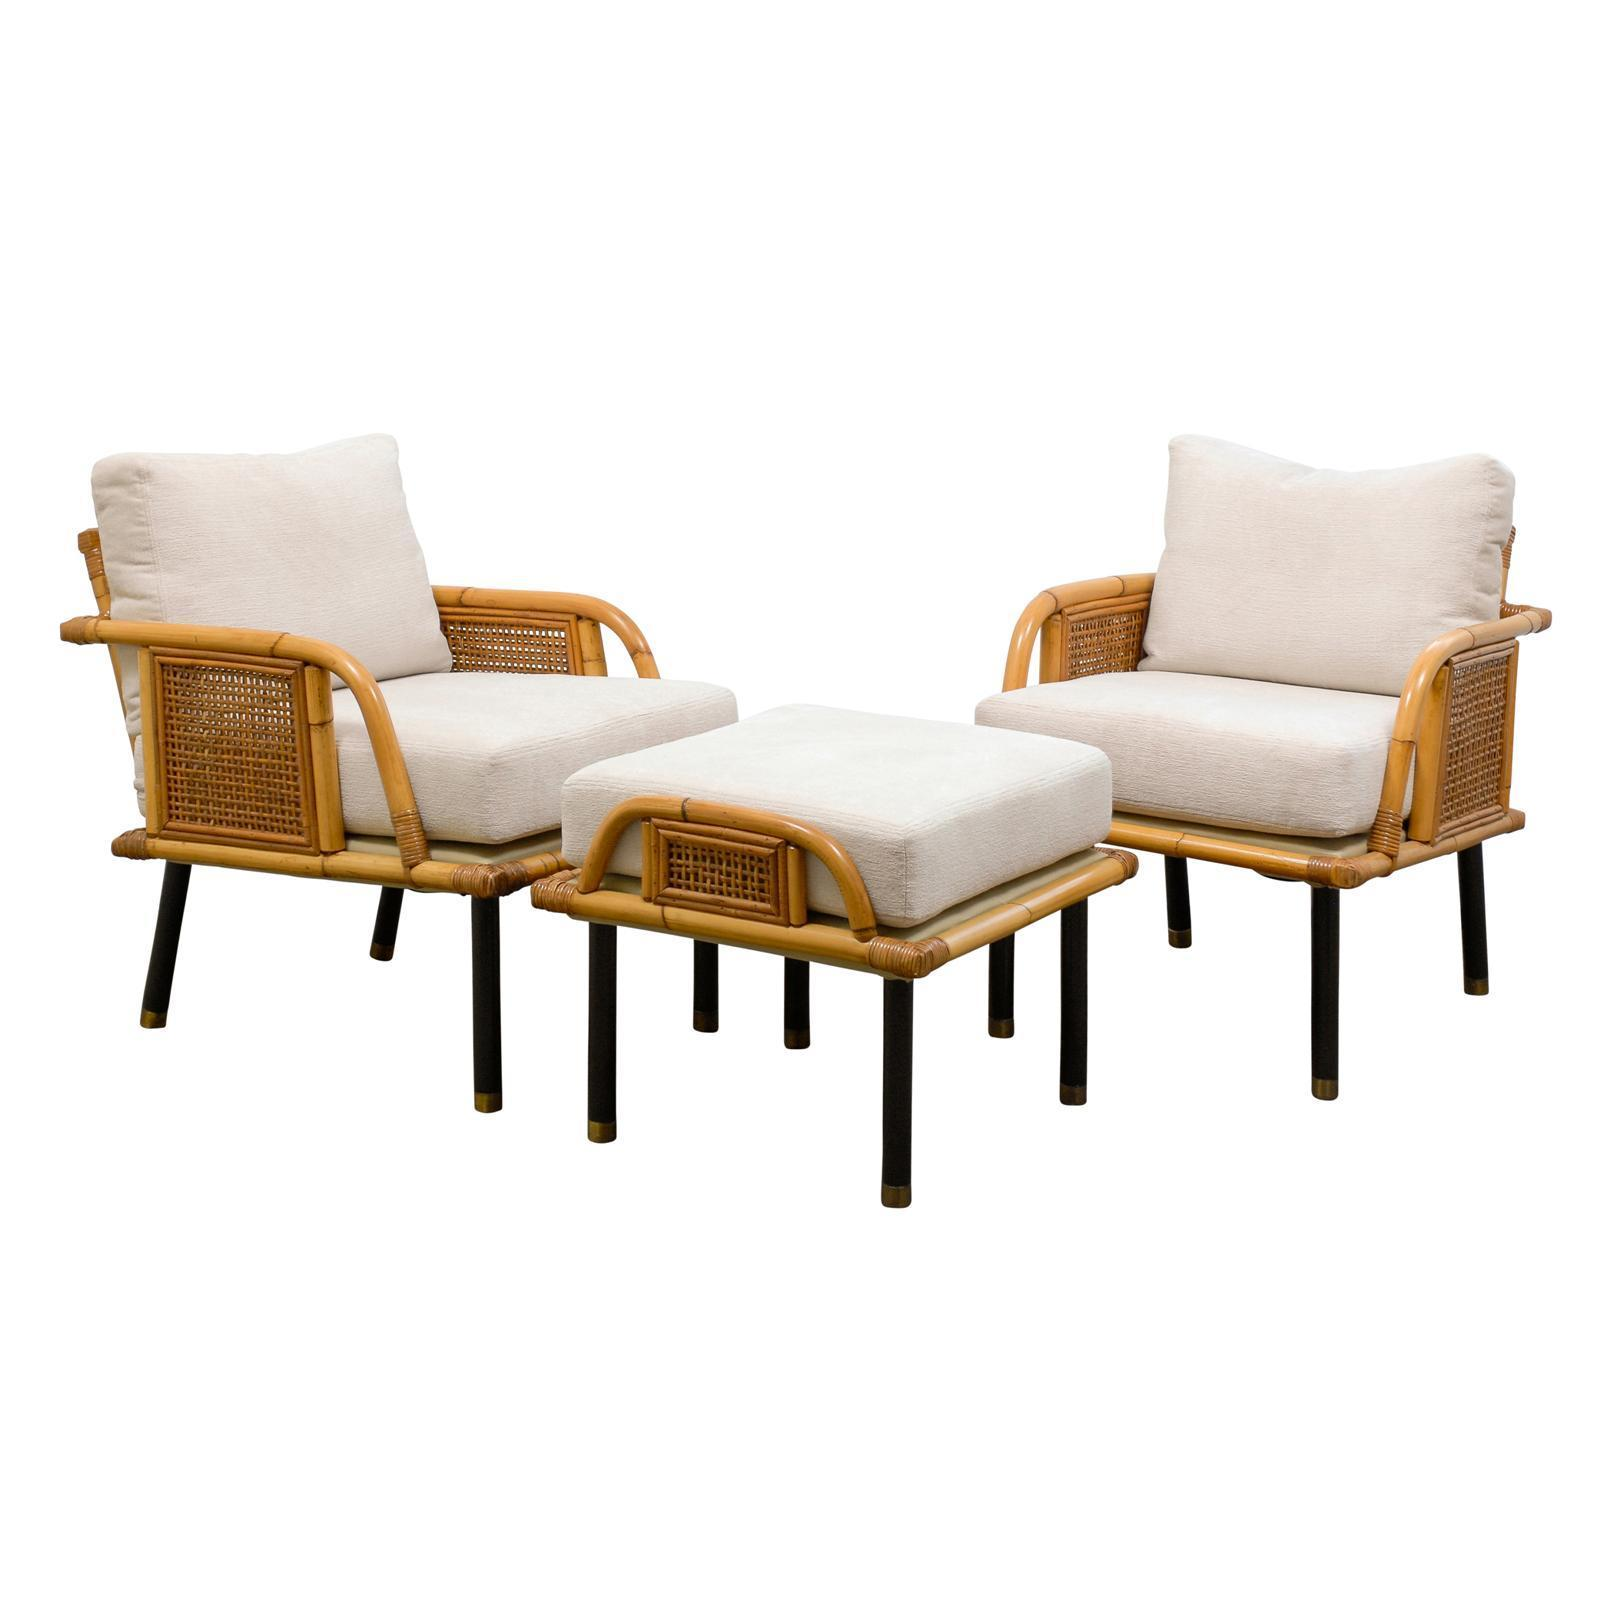 Sublime Pair of Modern Rattan and Cane Lounge Chairs by Ficks Reed, circa 1950